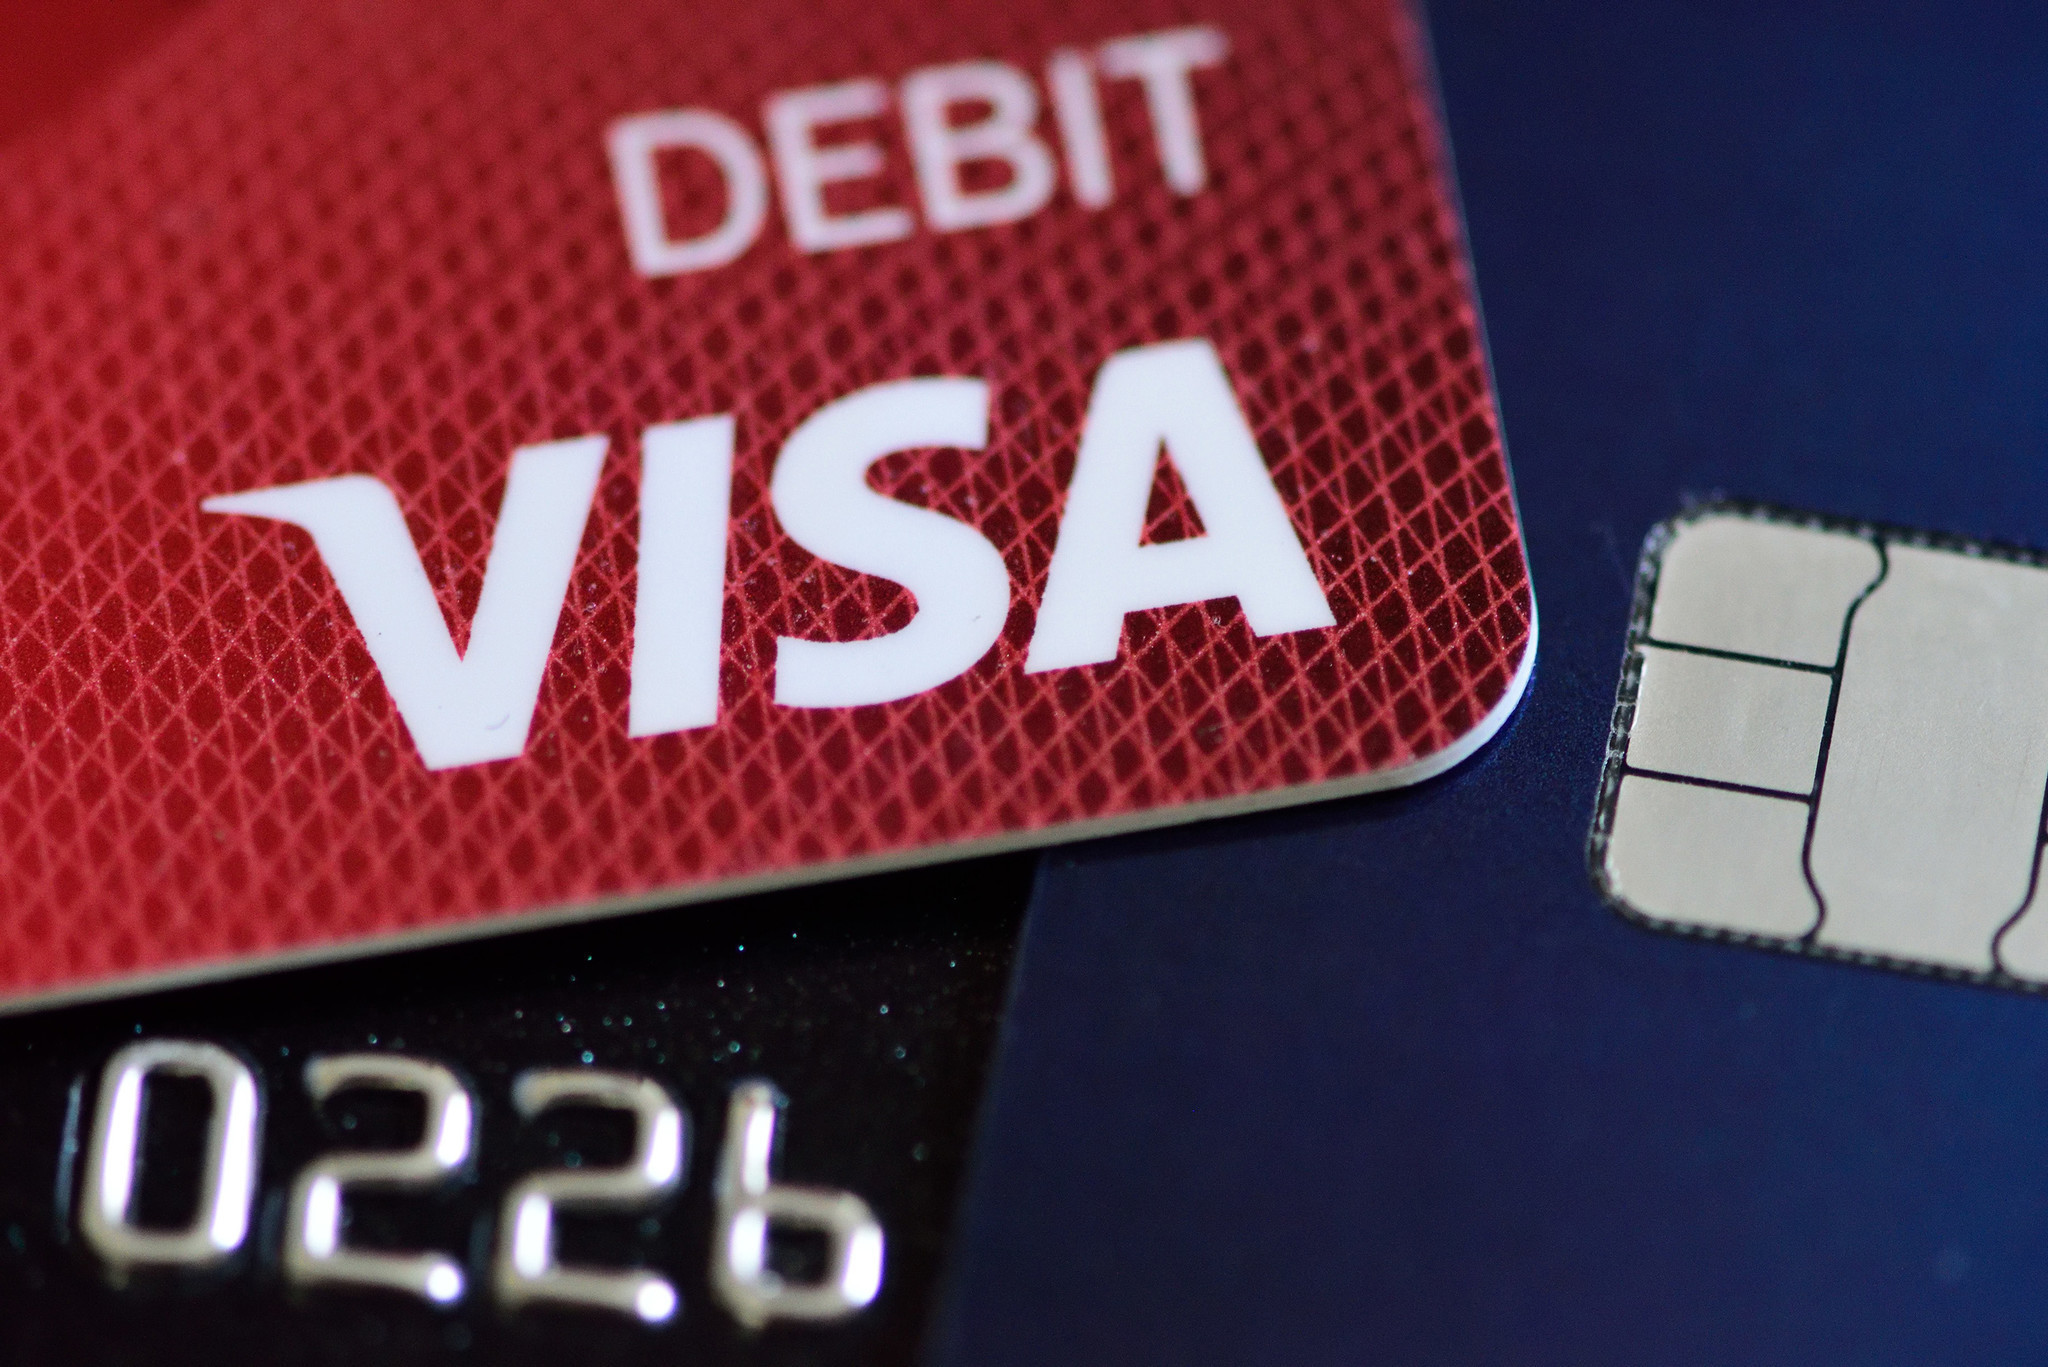 Banks want higher debit-card 'swipe fees,' but an effort to allow them has crumbled